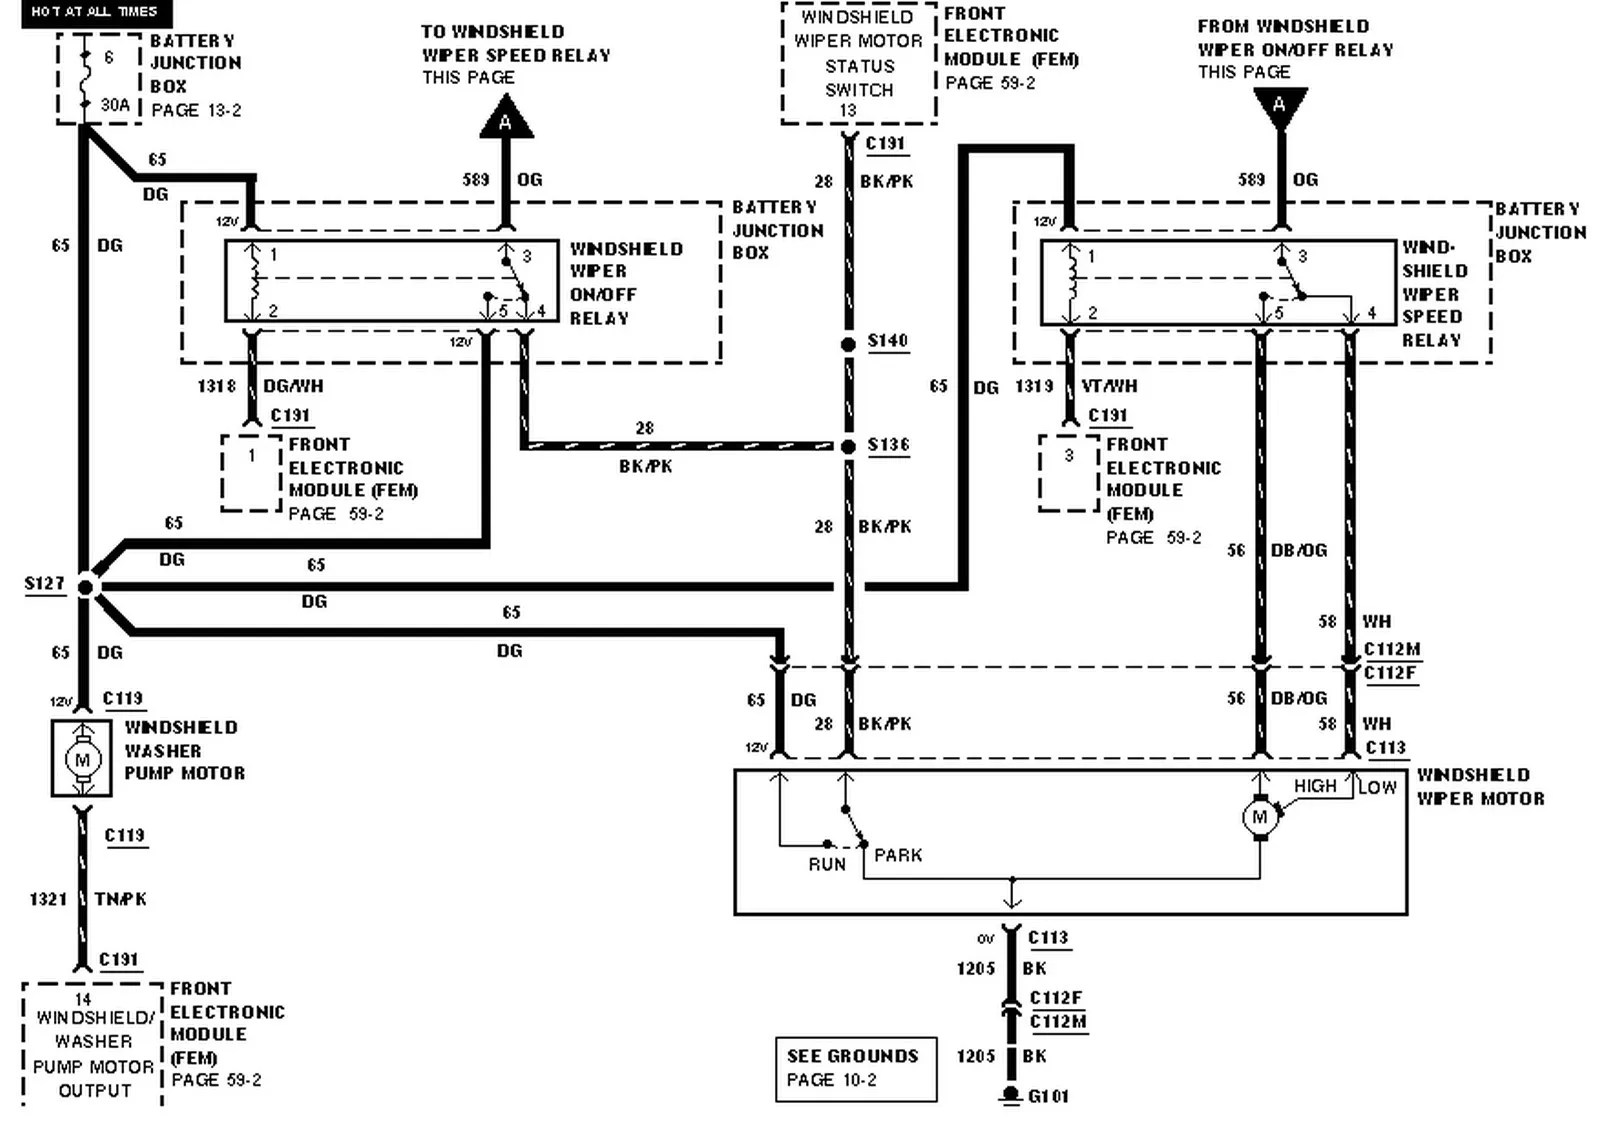 hight resolution of wiring schematic for 1999 windstar data wiring diagram 1999 ford windstar wiring schematics wiring diagram technic